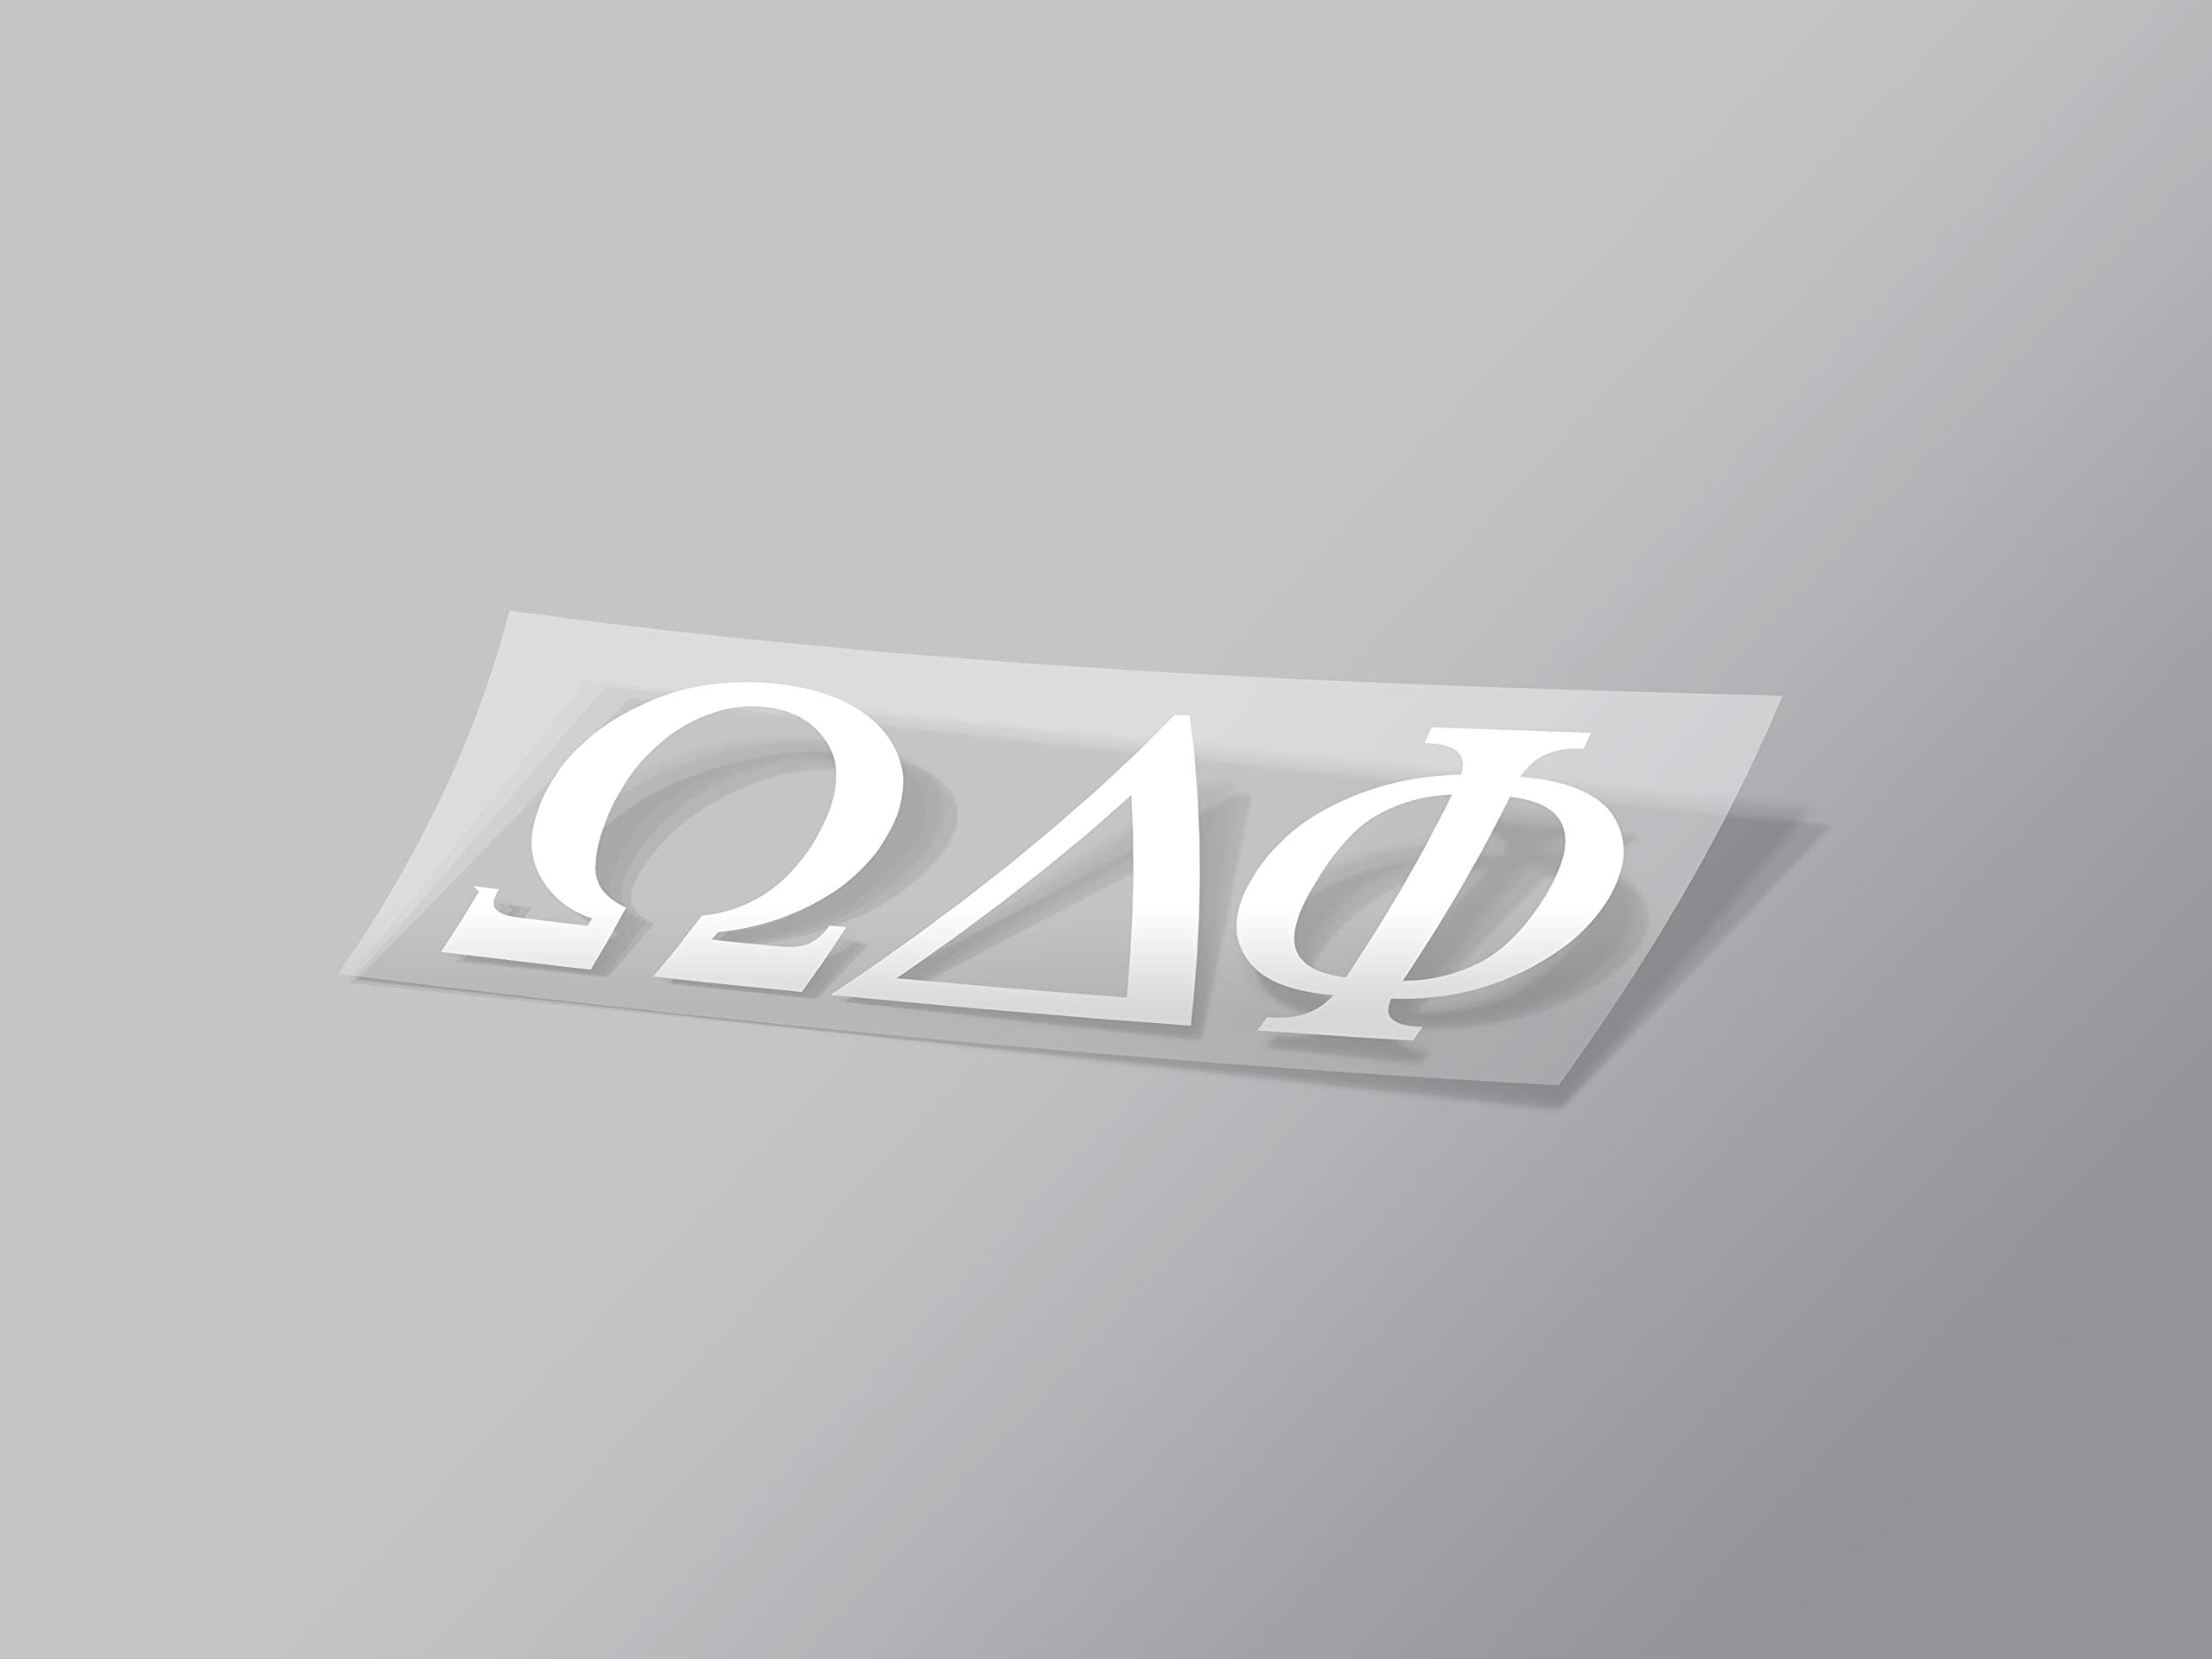 "Omega Delta Phi Sticker Greek Sorority Decal for Car, Laptop, Windows, Officially Licensed Product, Monogram Design 2.5"" Tall - White"